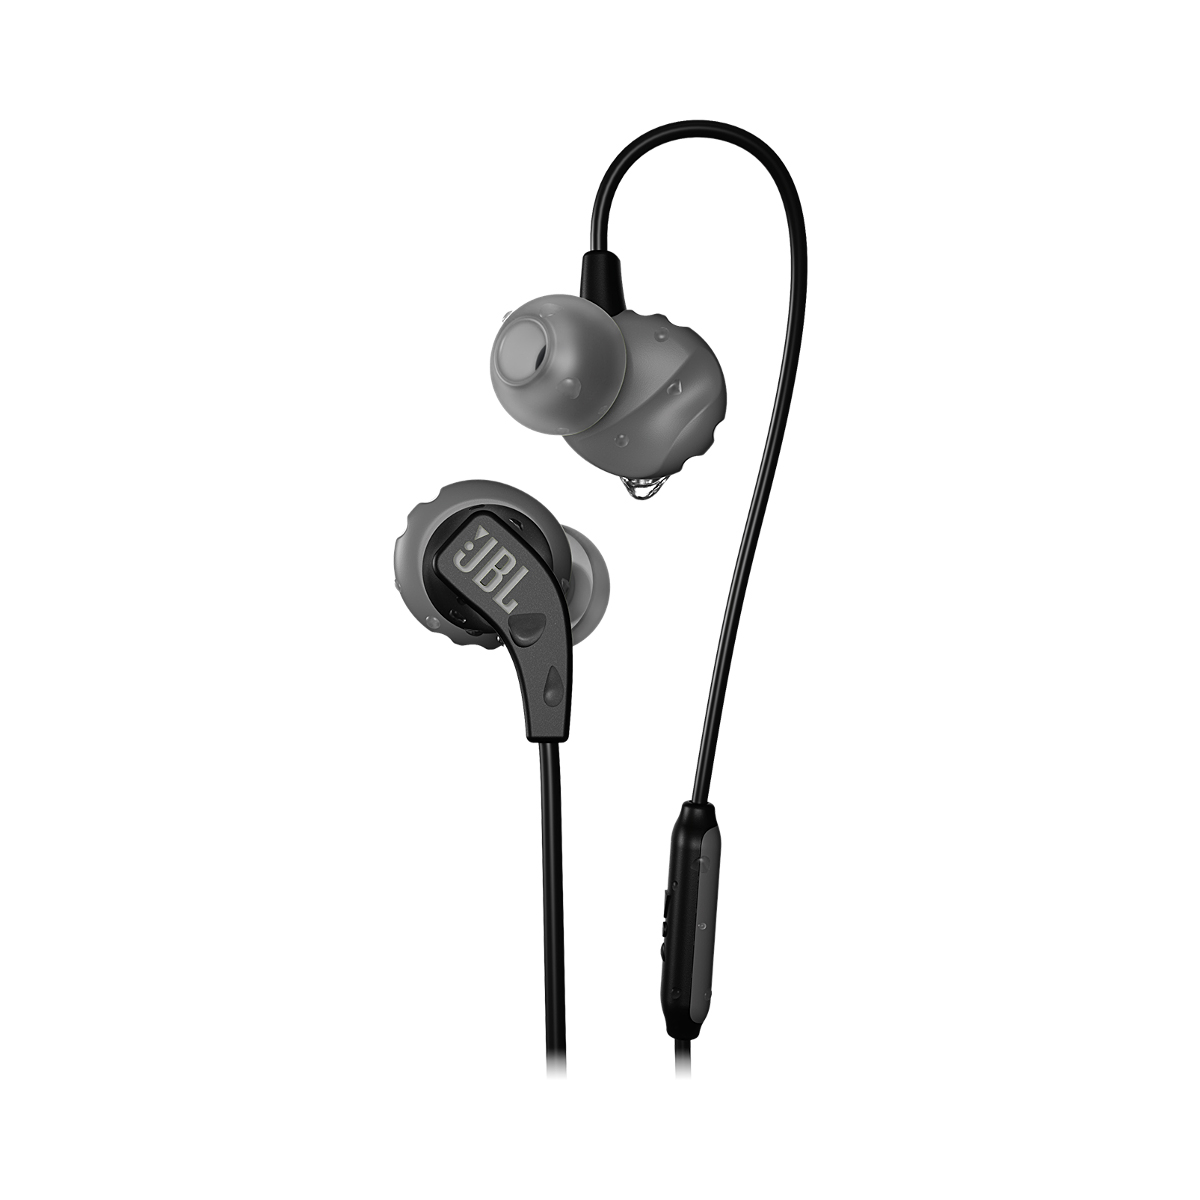 JBL Endurance RUN In-Ear Headphones - Color: Black, Black, large, image 1